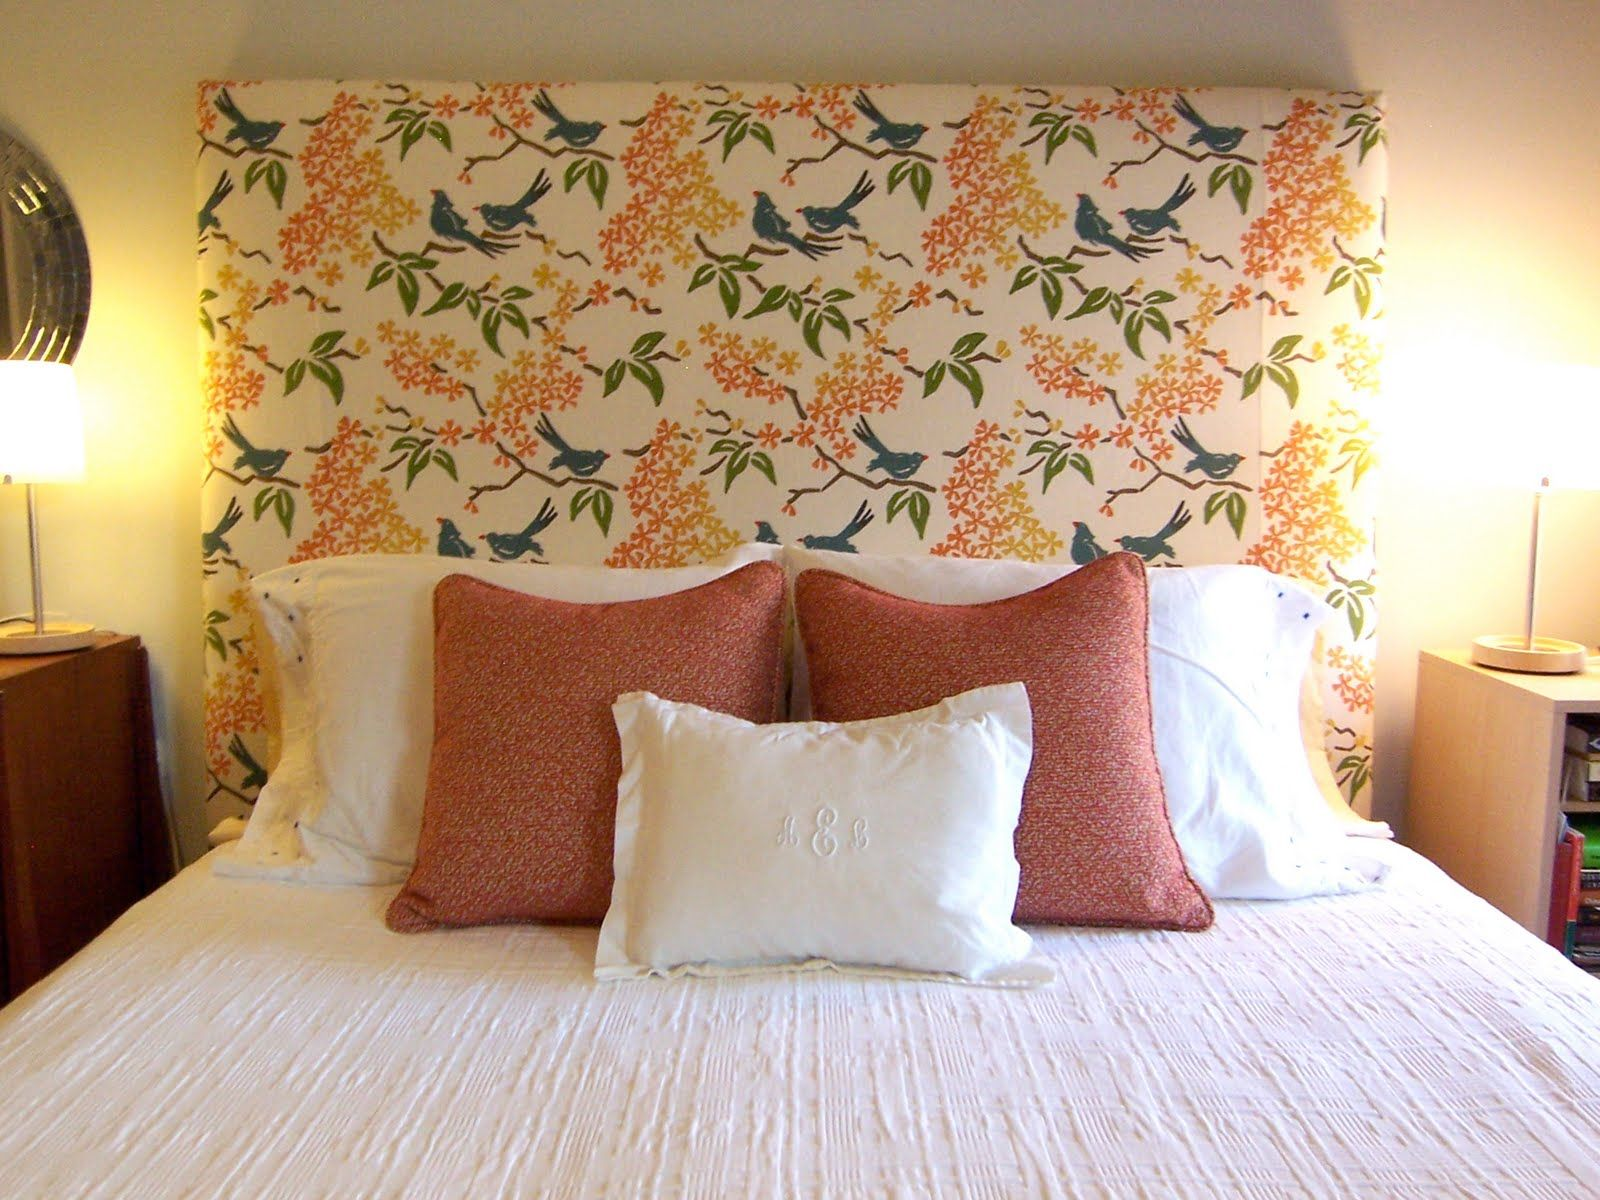 Ordinaire Accent Pillows | Orange And White Monogrammed Accent Pillows On Bed